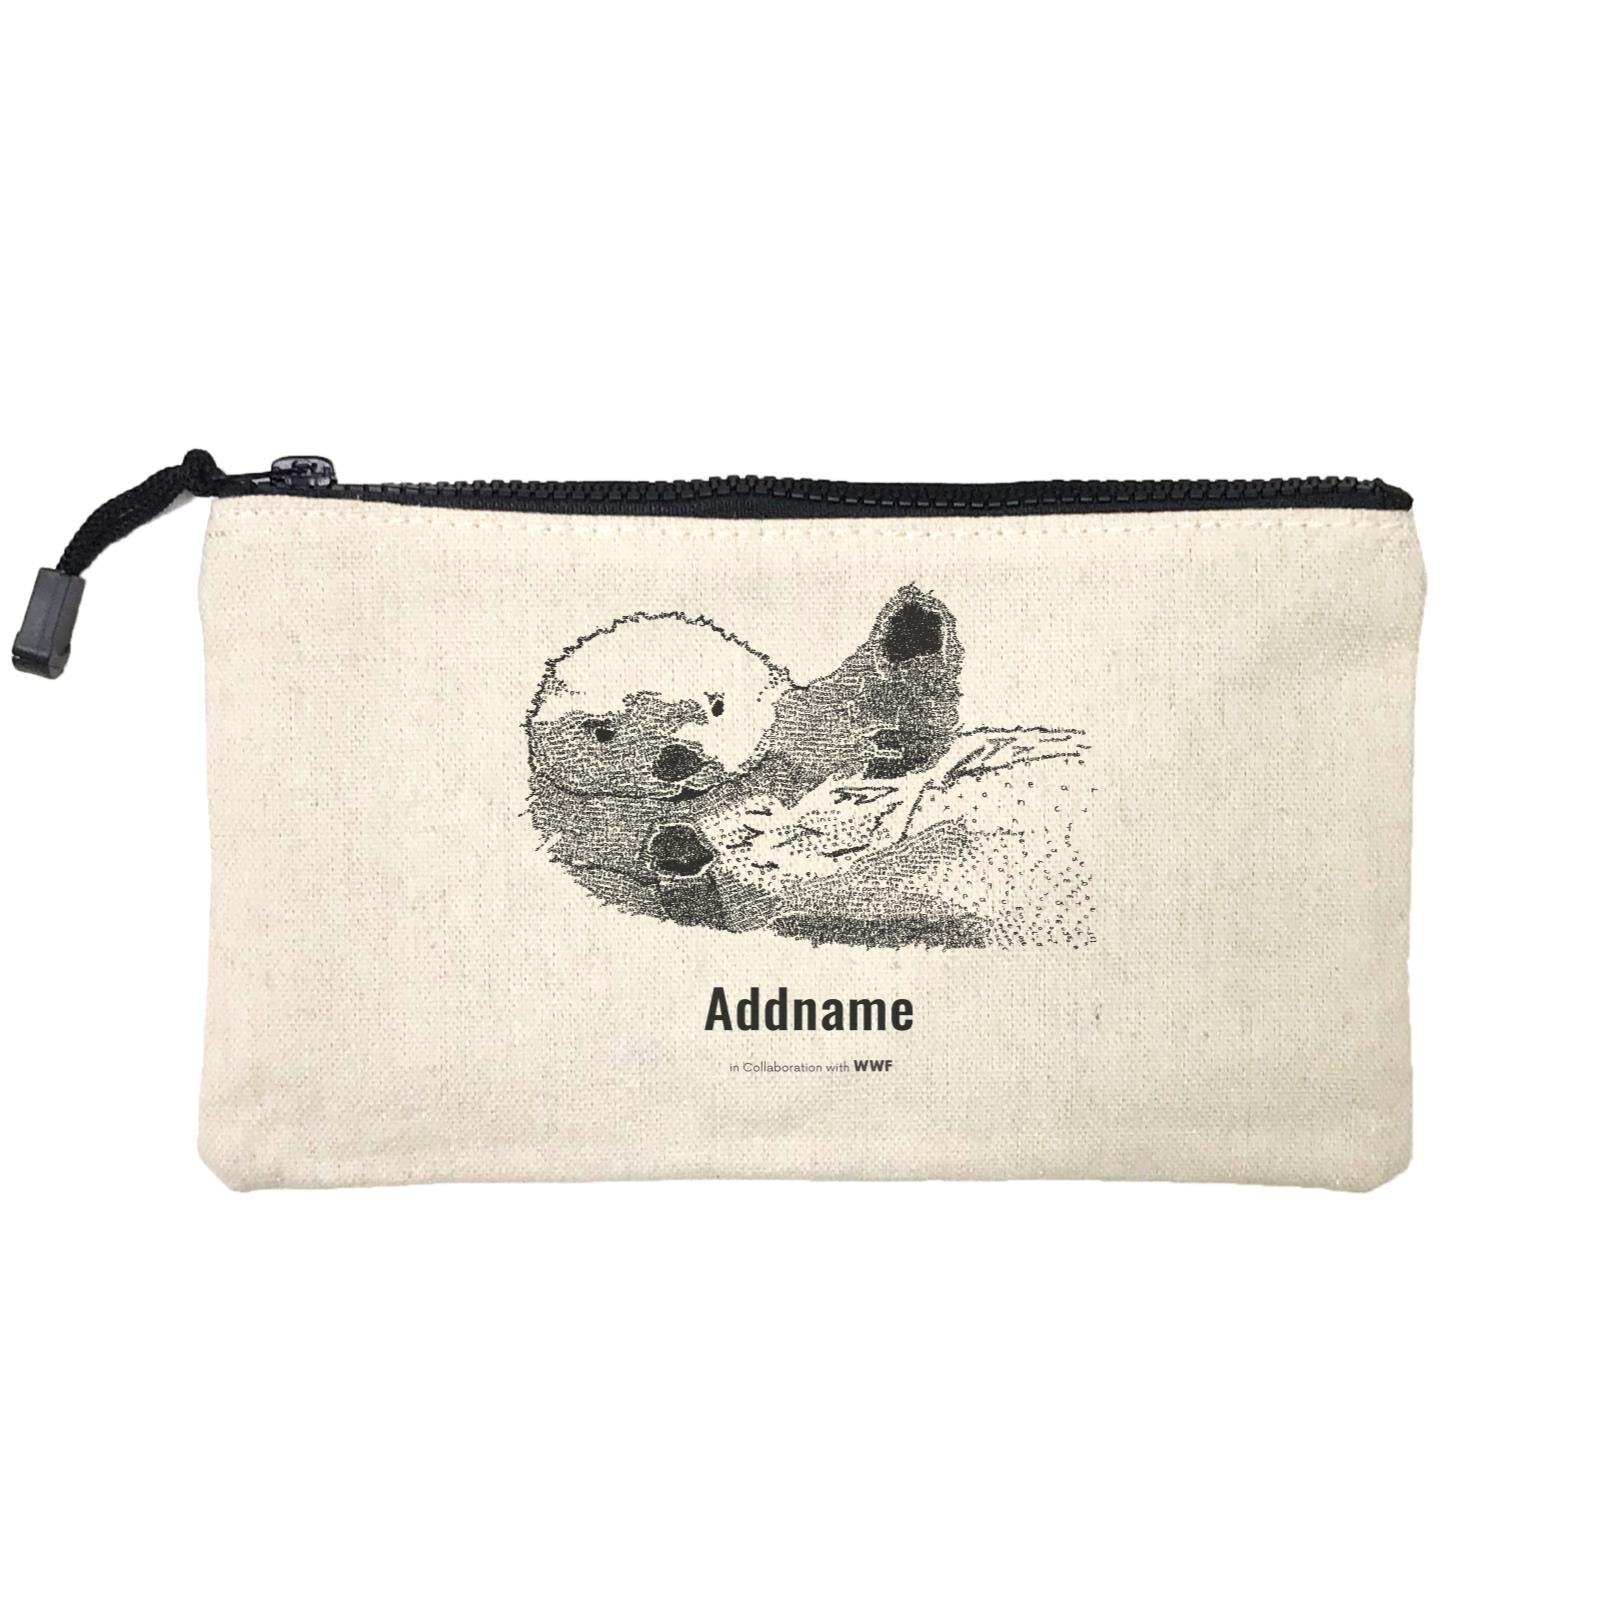 Hand Written Animals Sea Otter By ArtC Addname Mini Accessories Stationery Pouch